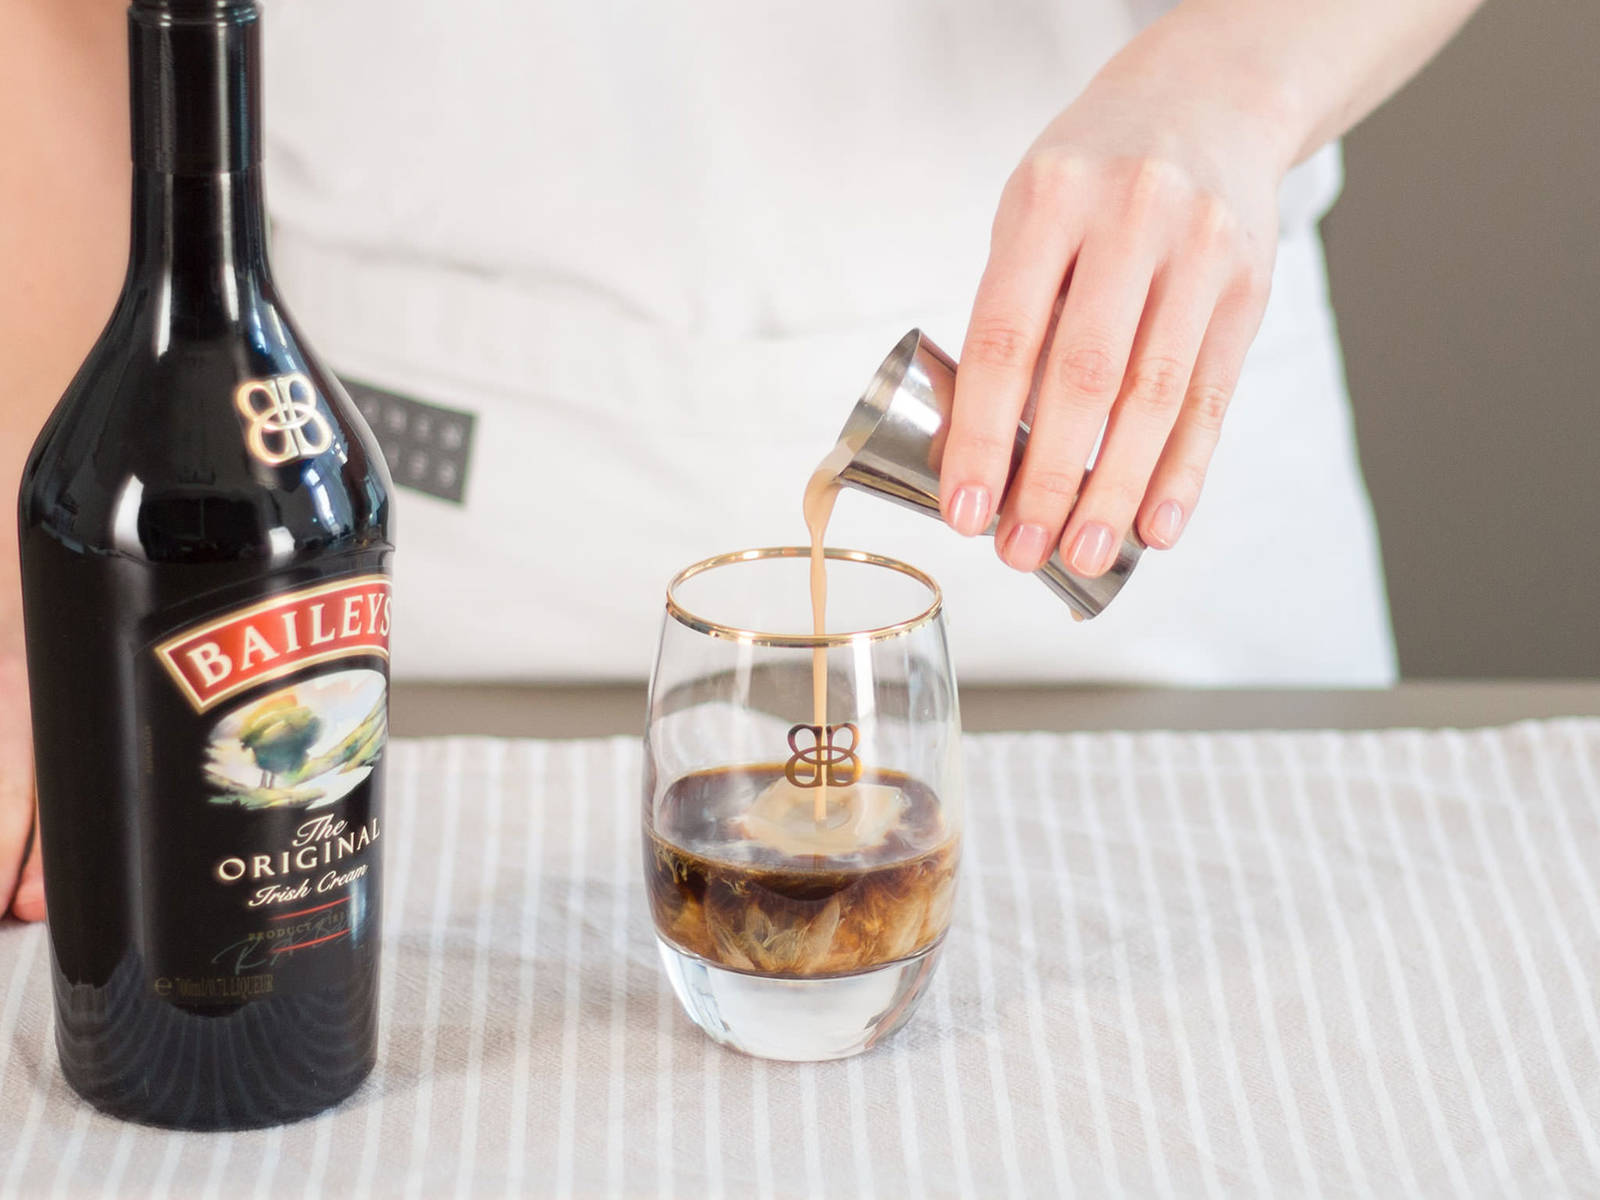 Pour coffee into glasses for serving and add Baileys. Stir well. Enjoy on ice!